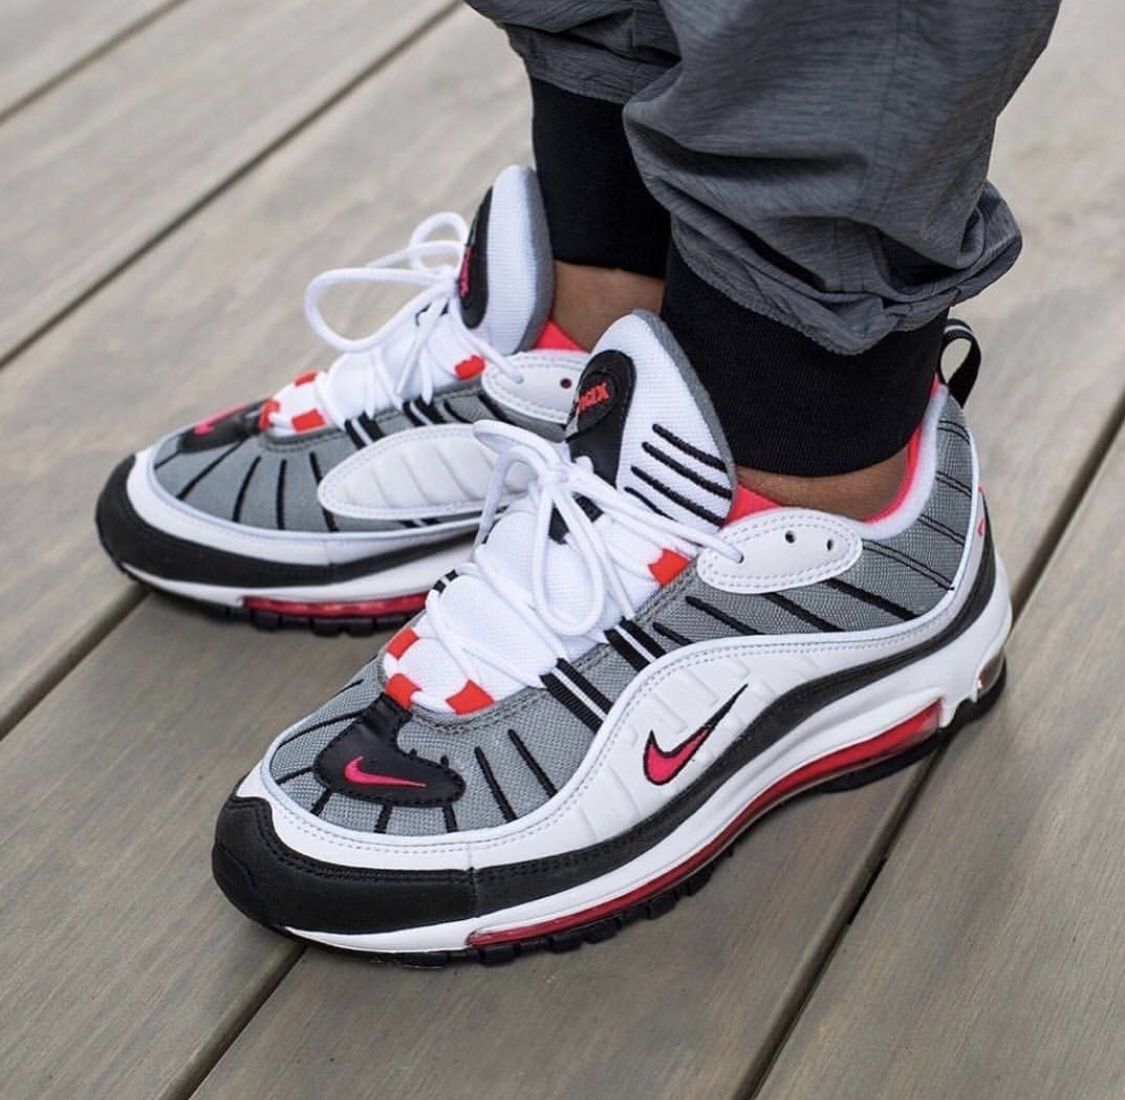 sports shoes fc823 a0c7c Nike Solar Red 98 | Stuff to buy in 2019 | Sneakers nike ...